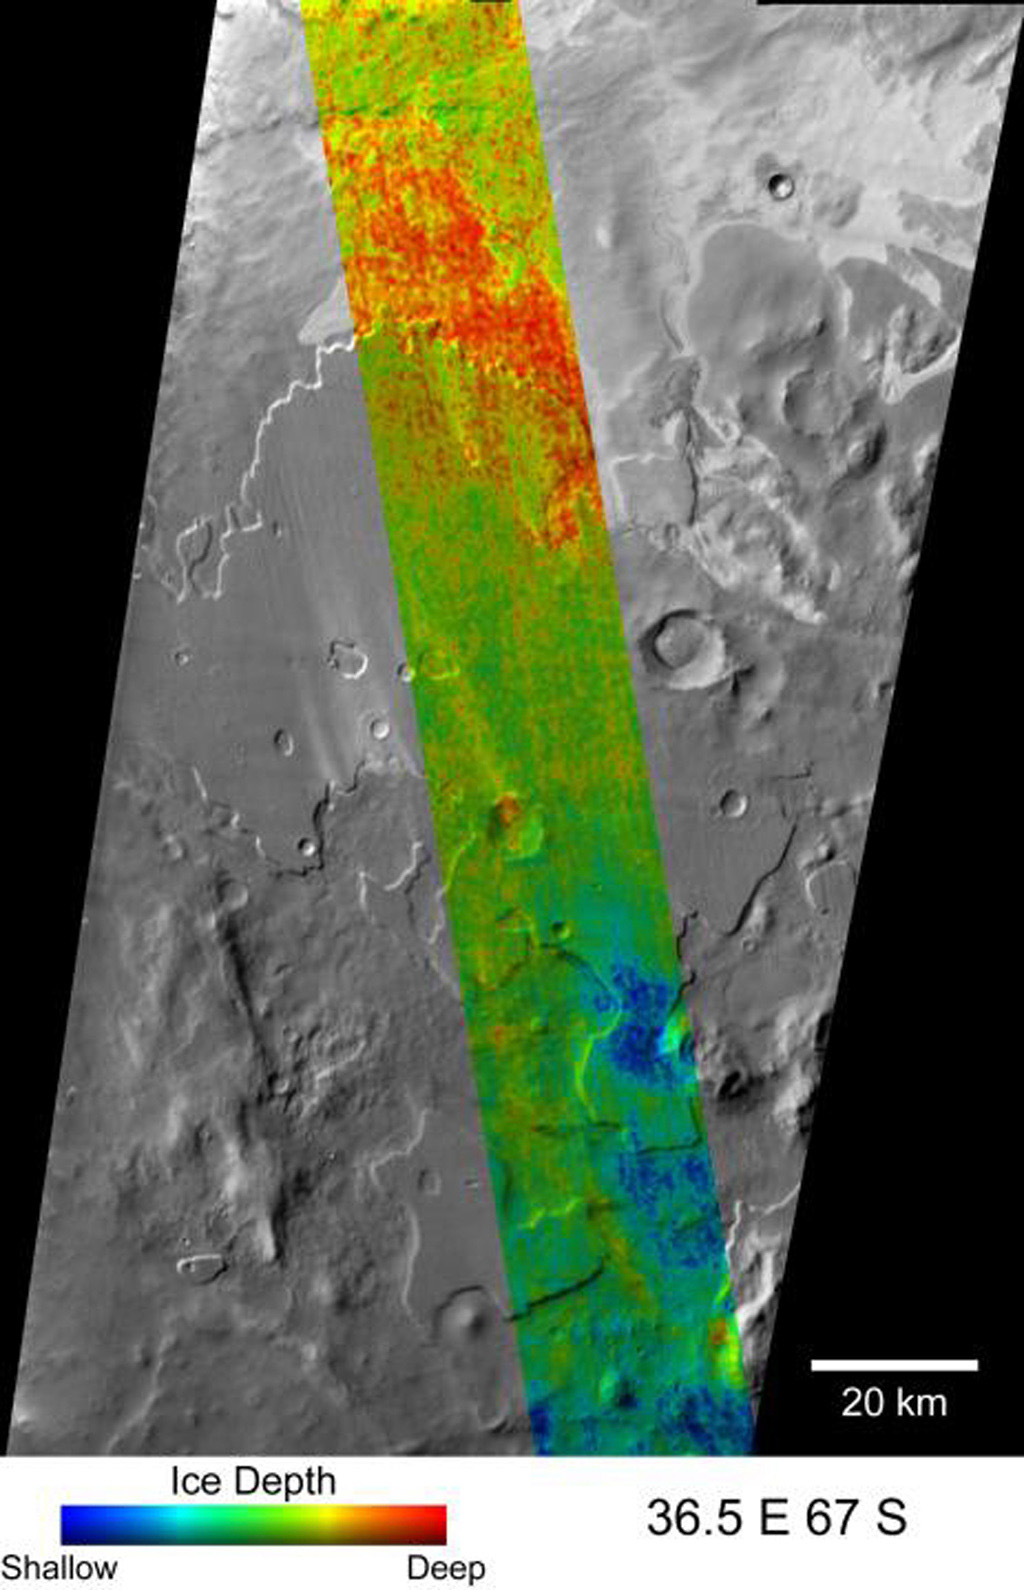 This image from NASA's Mars Odyssey spacecraft shows a map of a far-northern site on Mars indicating the change in nighttime ground-surface temperature between summer and fall.